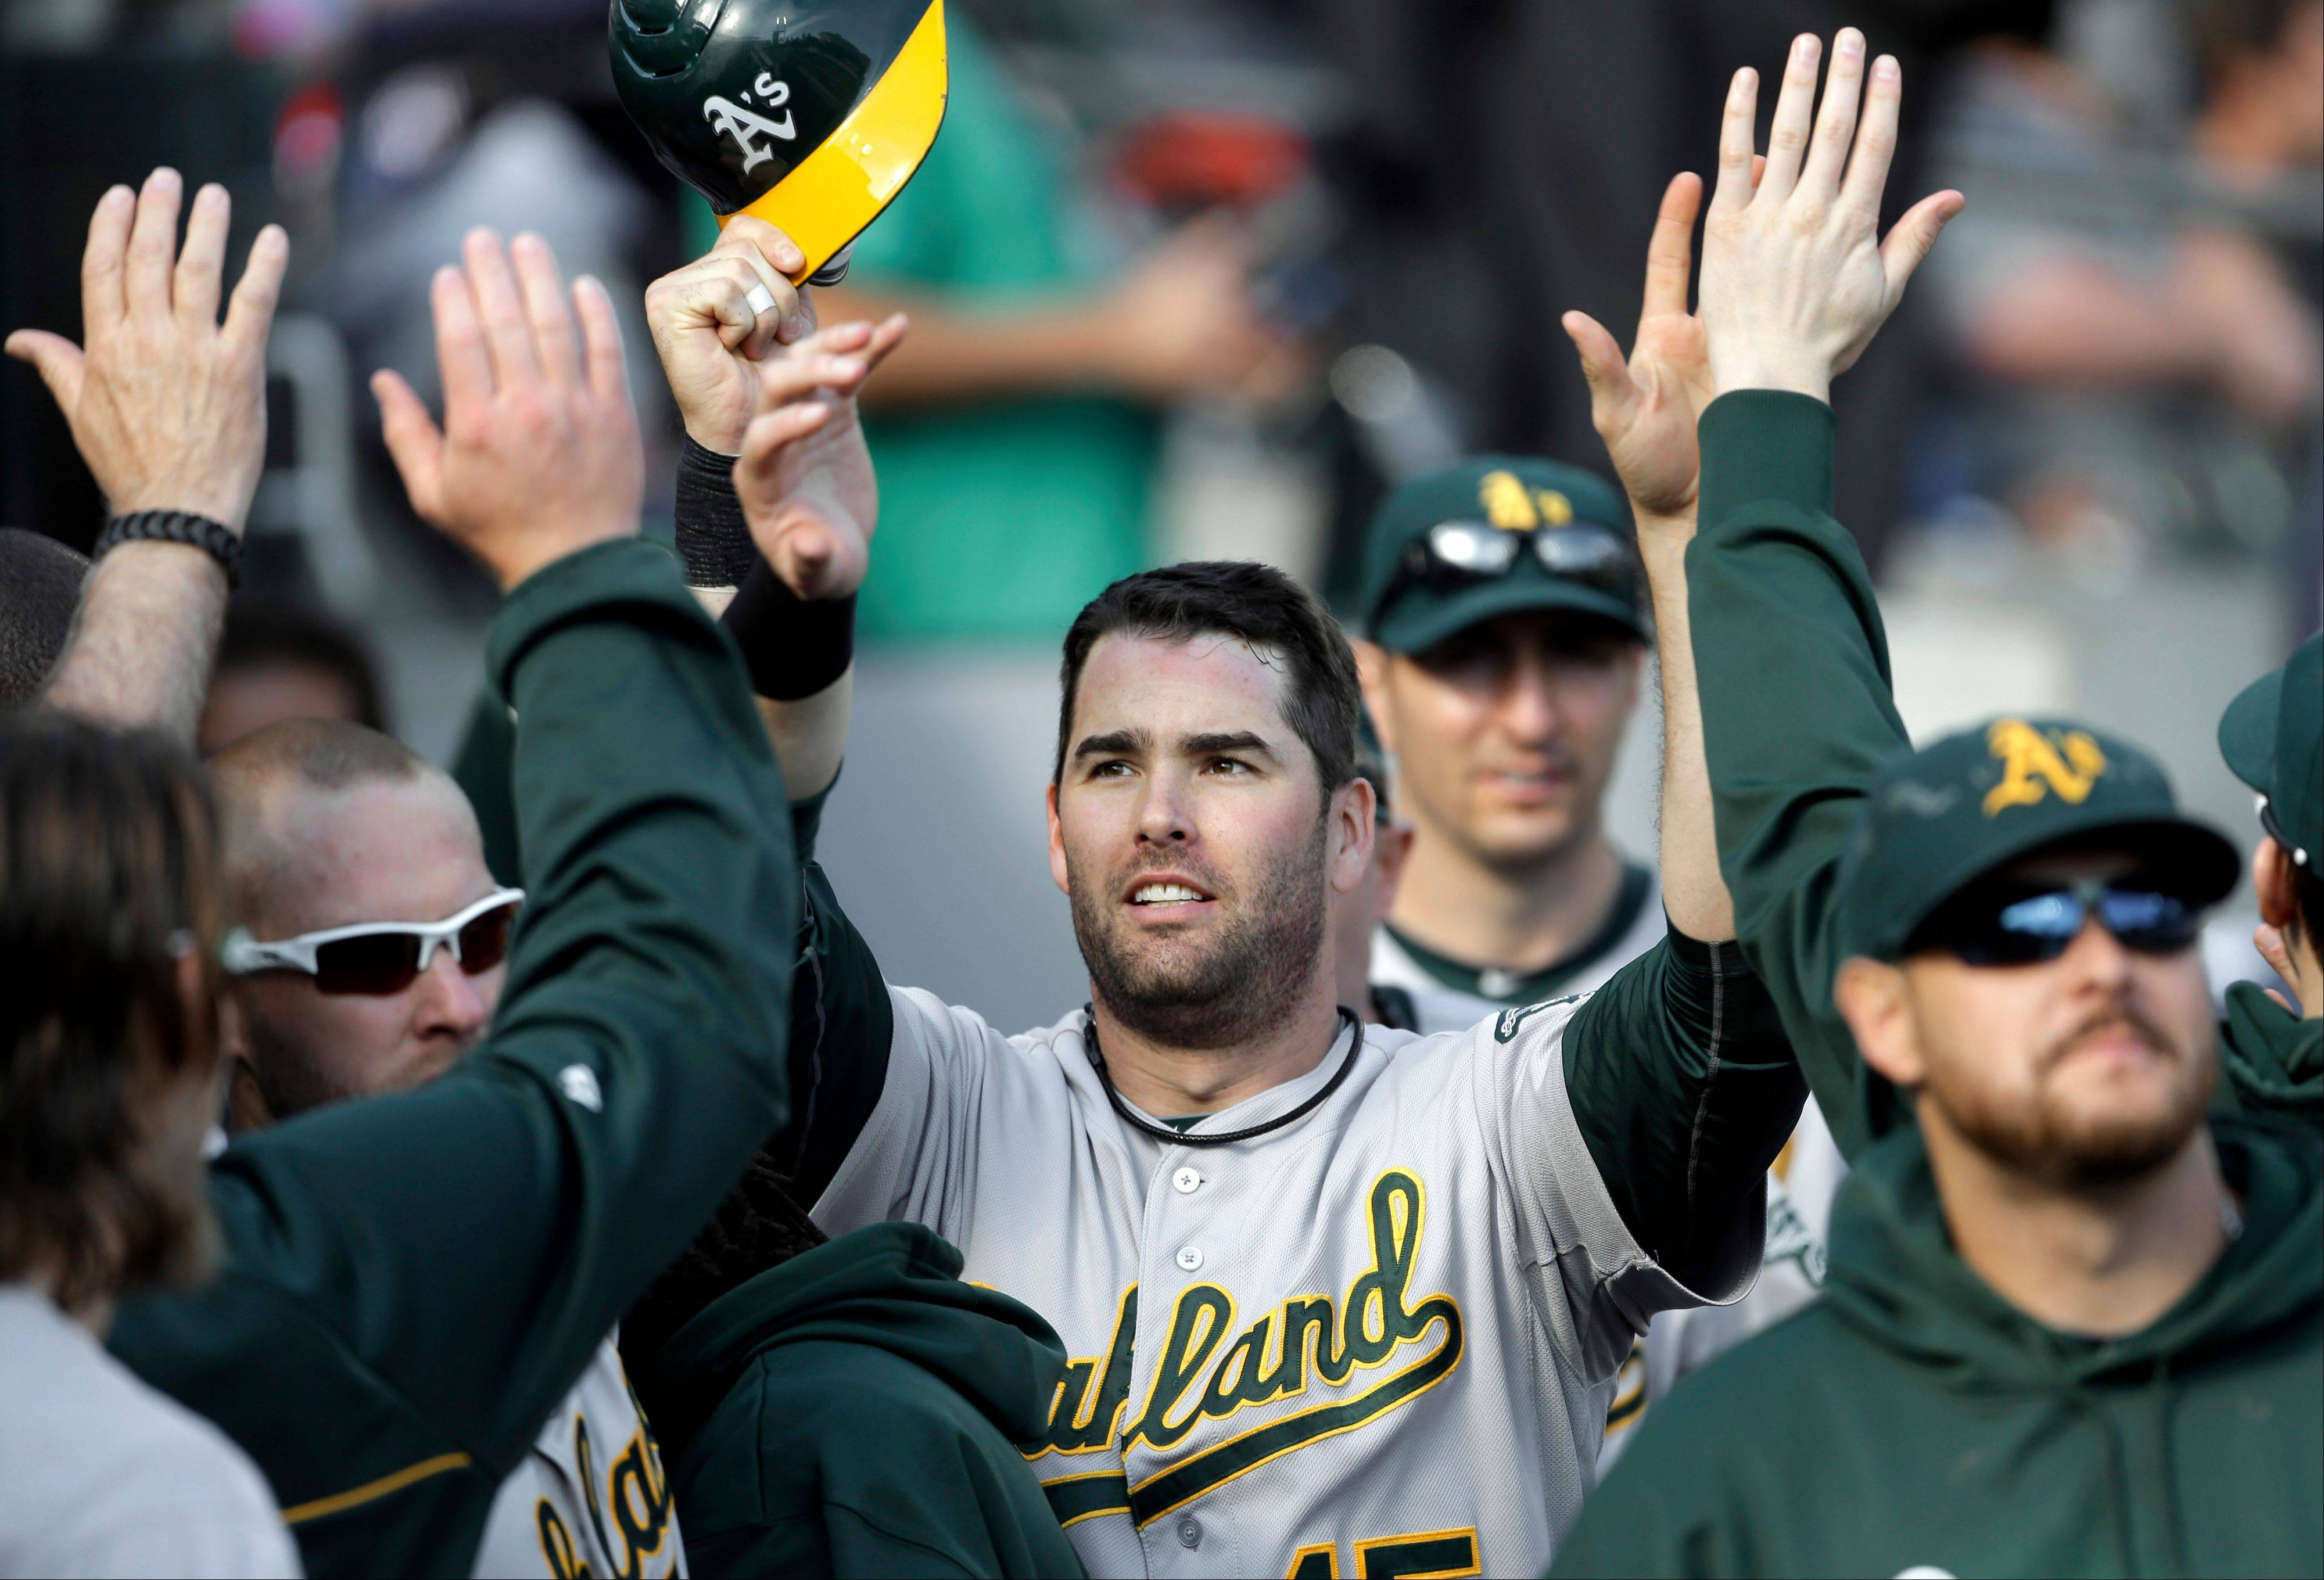 The Oakland Athletics' Seth Smith is congratulated in the dugout Thursday after scoring on an RBI double by Josh Donaldson during the ninth inning against the Detroit Tigers.